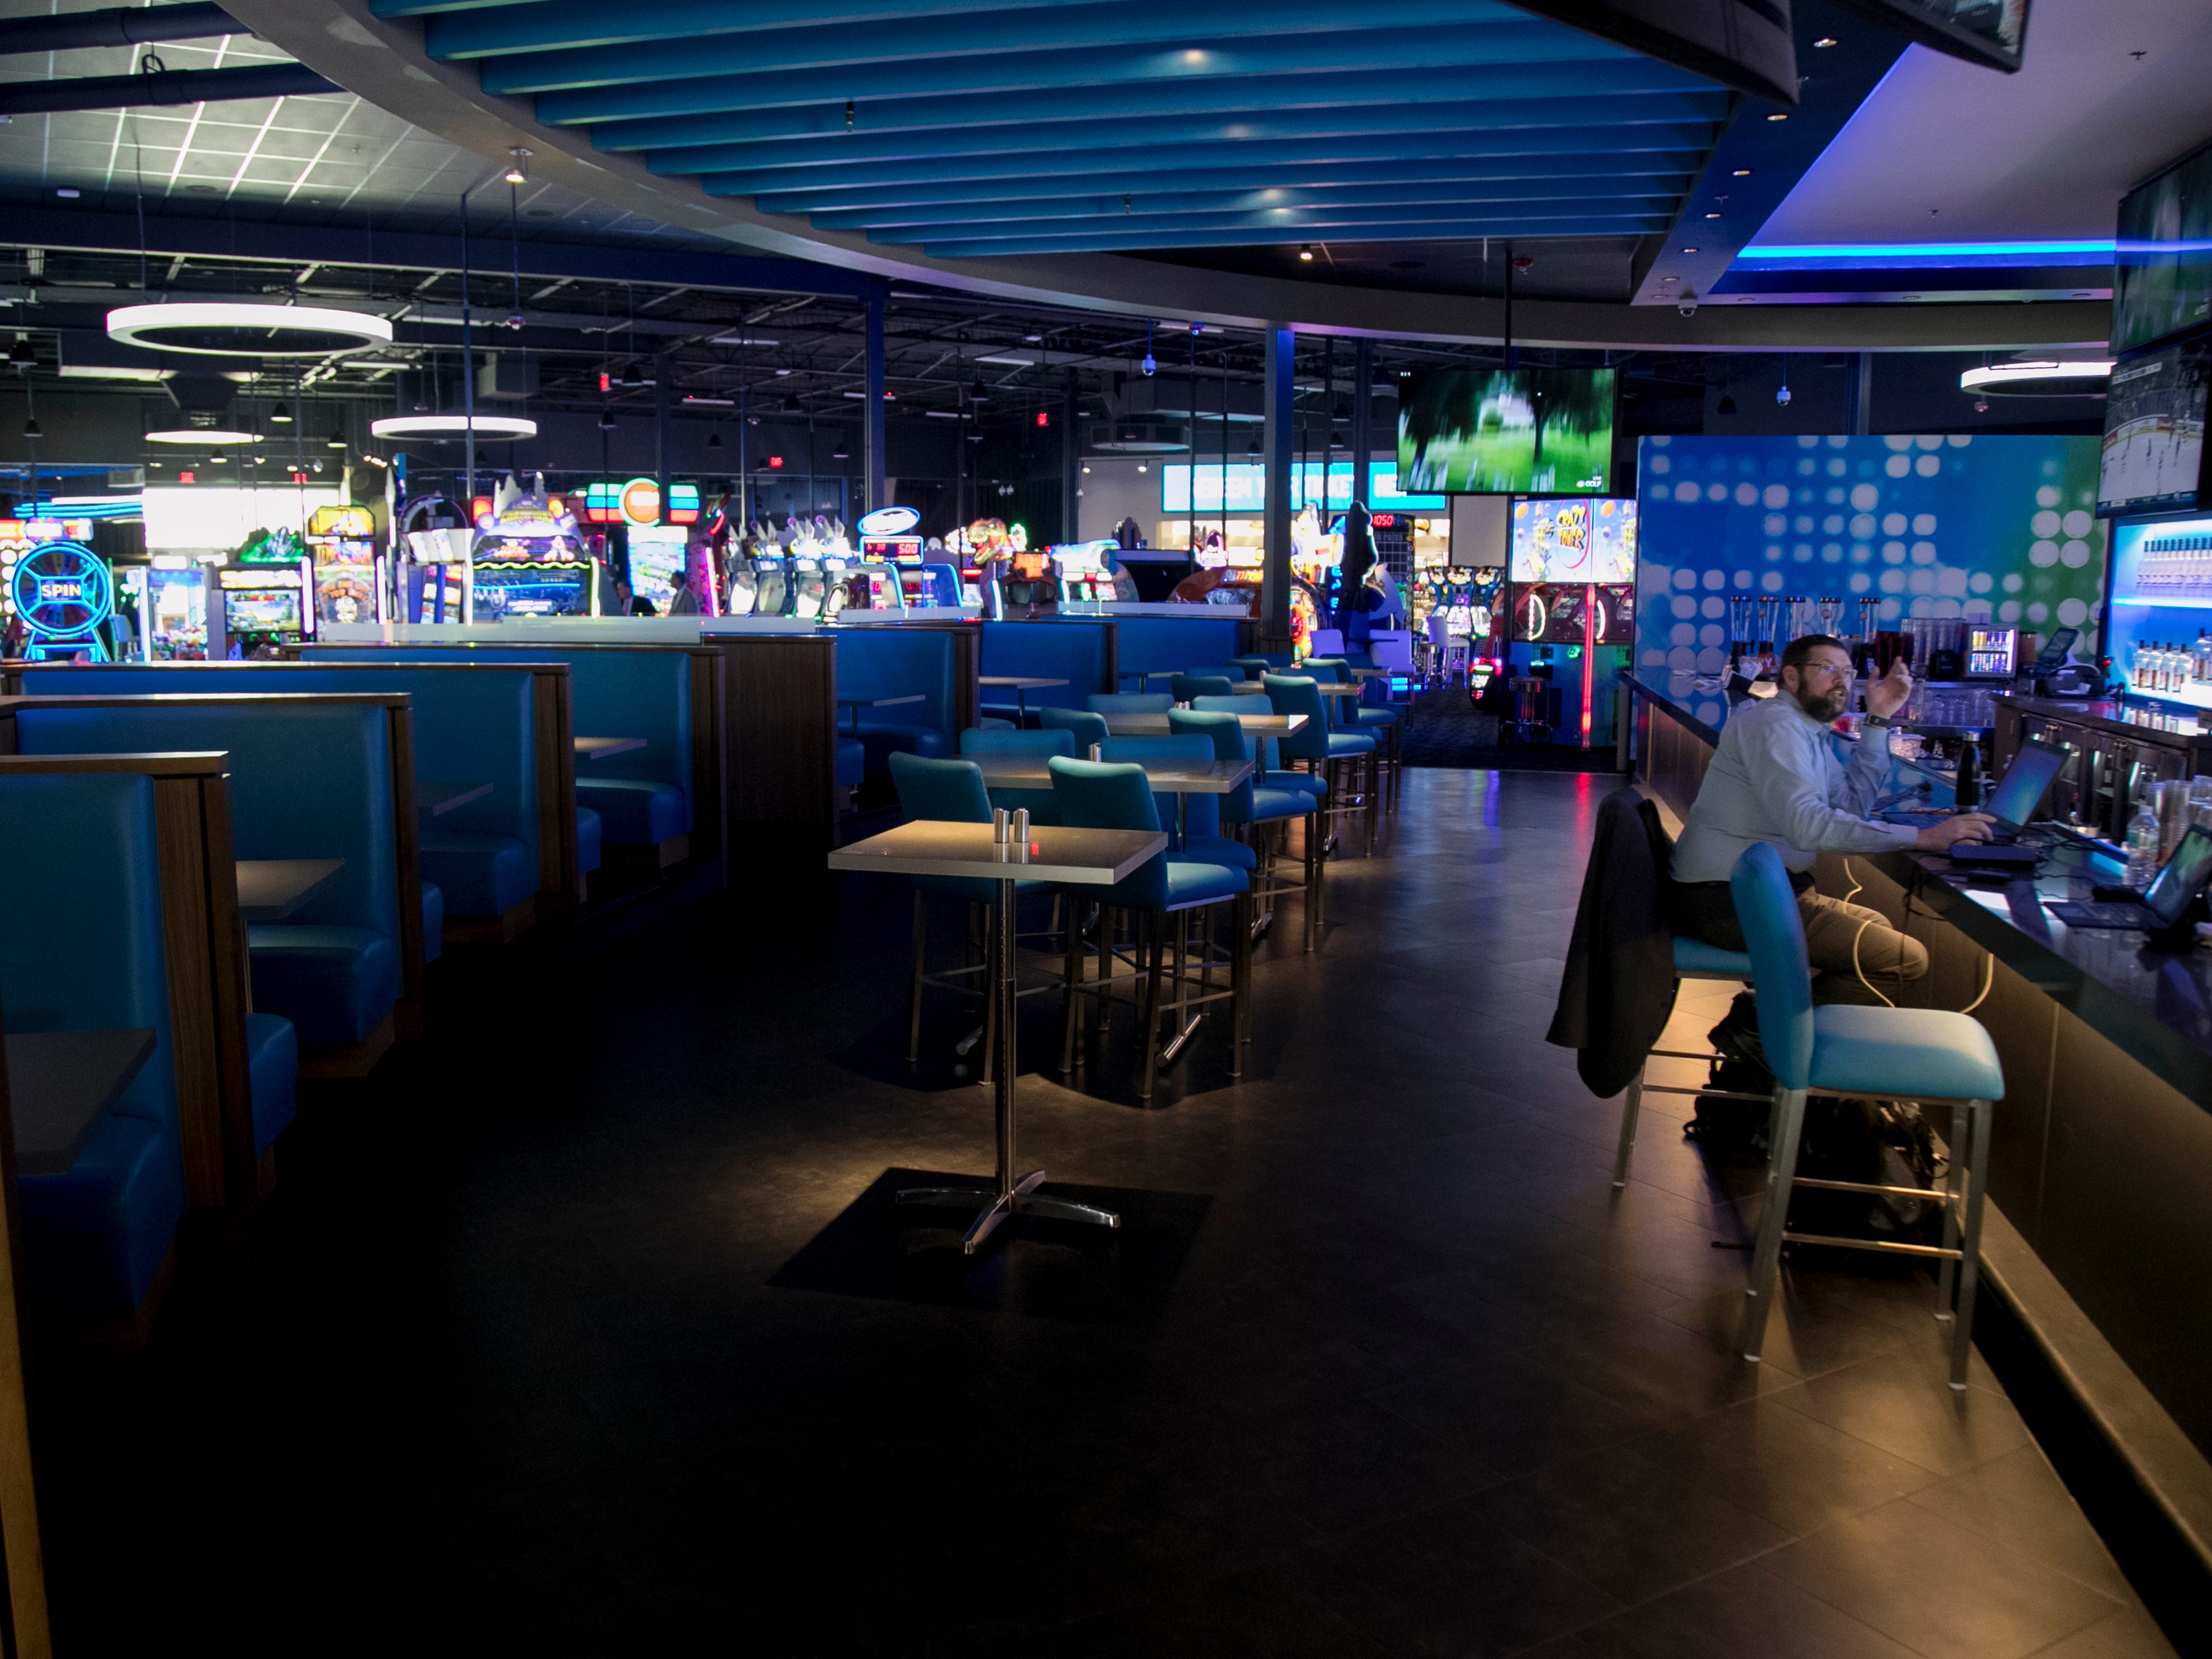 Dave & Buster's at Bell Tower Shops has 40,000 square feet of entertainment; chef-crafted food, inventive drinks, hundreds of the newest arcade games and state-of-the-art sports bar. They plan to open April 8th.